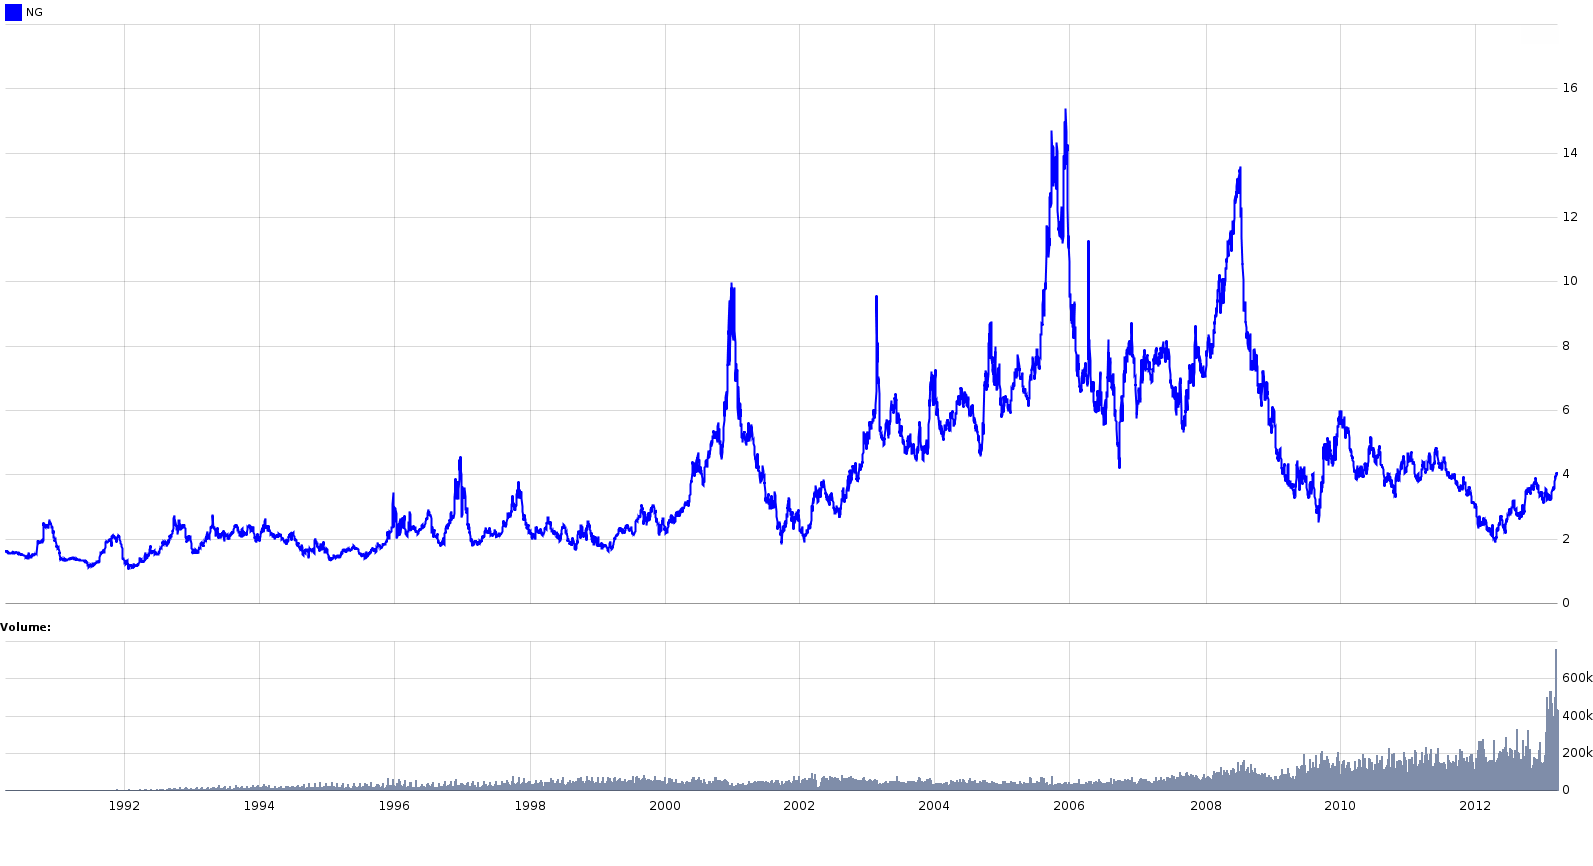 Henry Hub Natural Gas Spot Price Historical Data